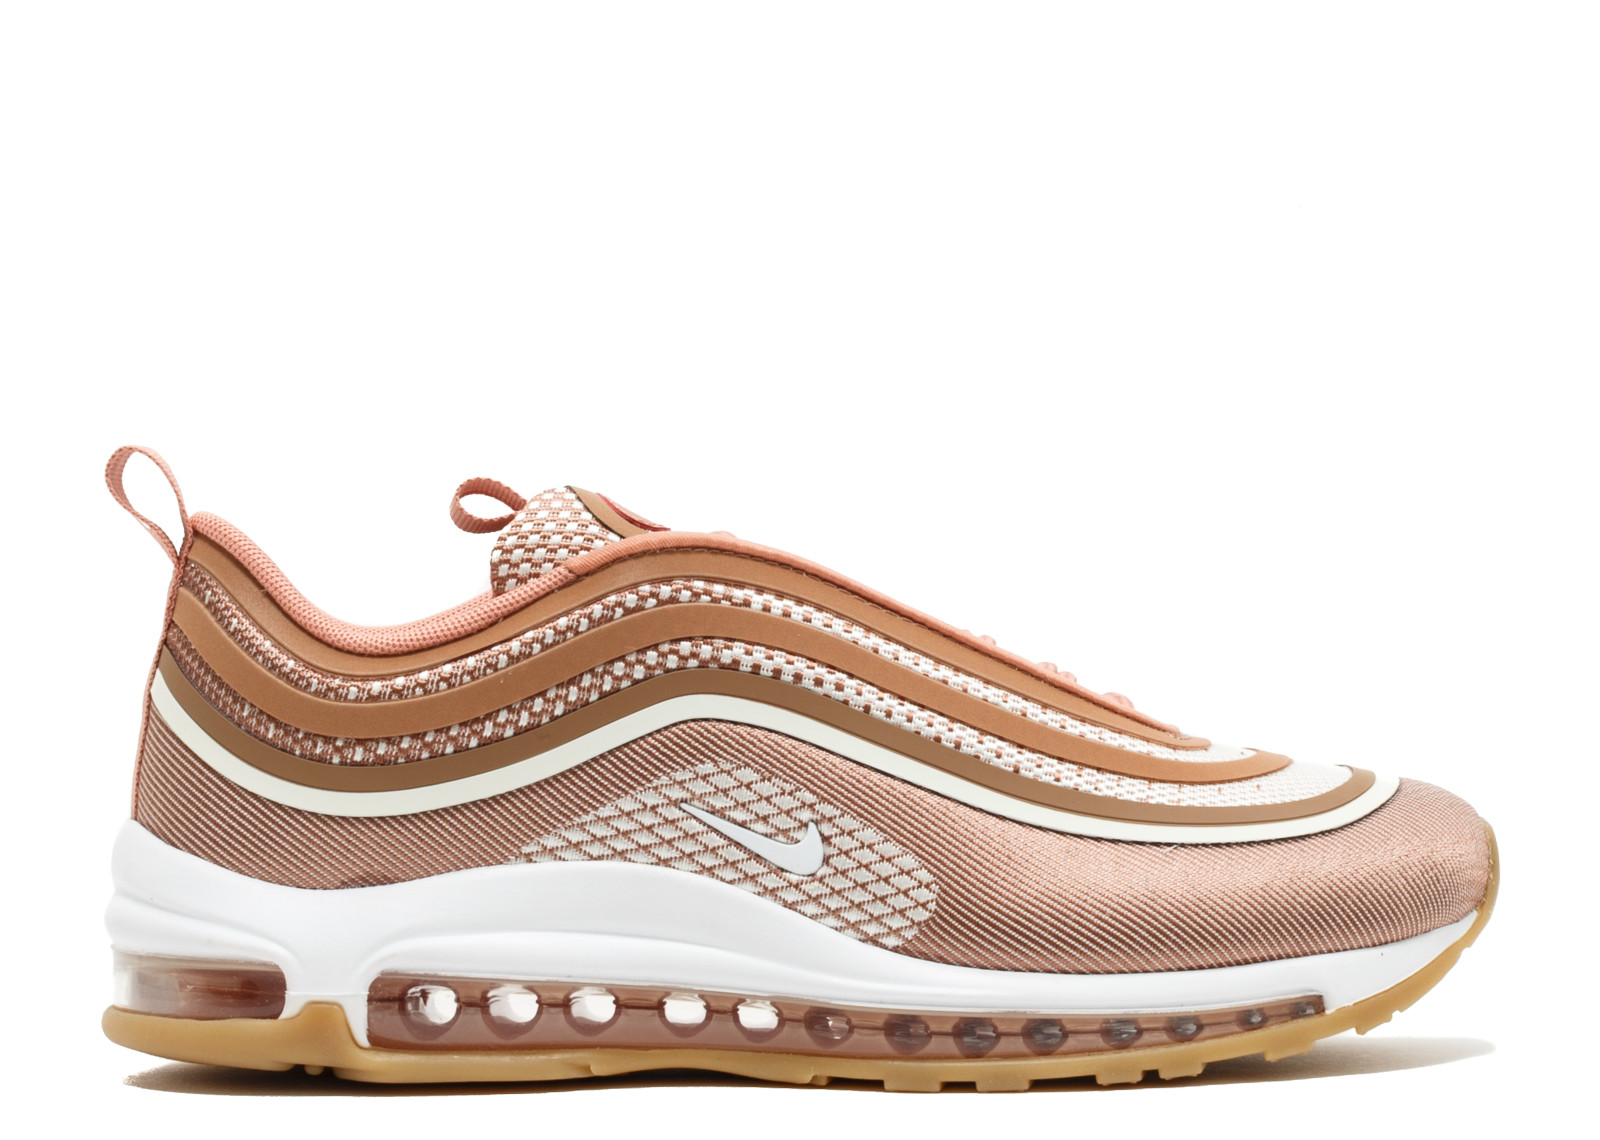 purchase cheap 6b67b 66c5f Nike - Men - Nike Air Max 97 Ultra 17 Rose Gold - 917704-600 - Size W5.5